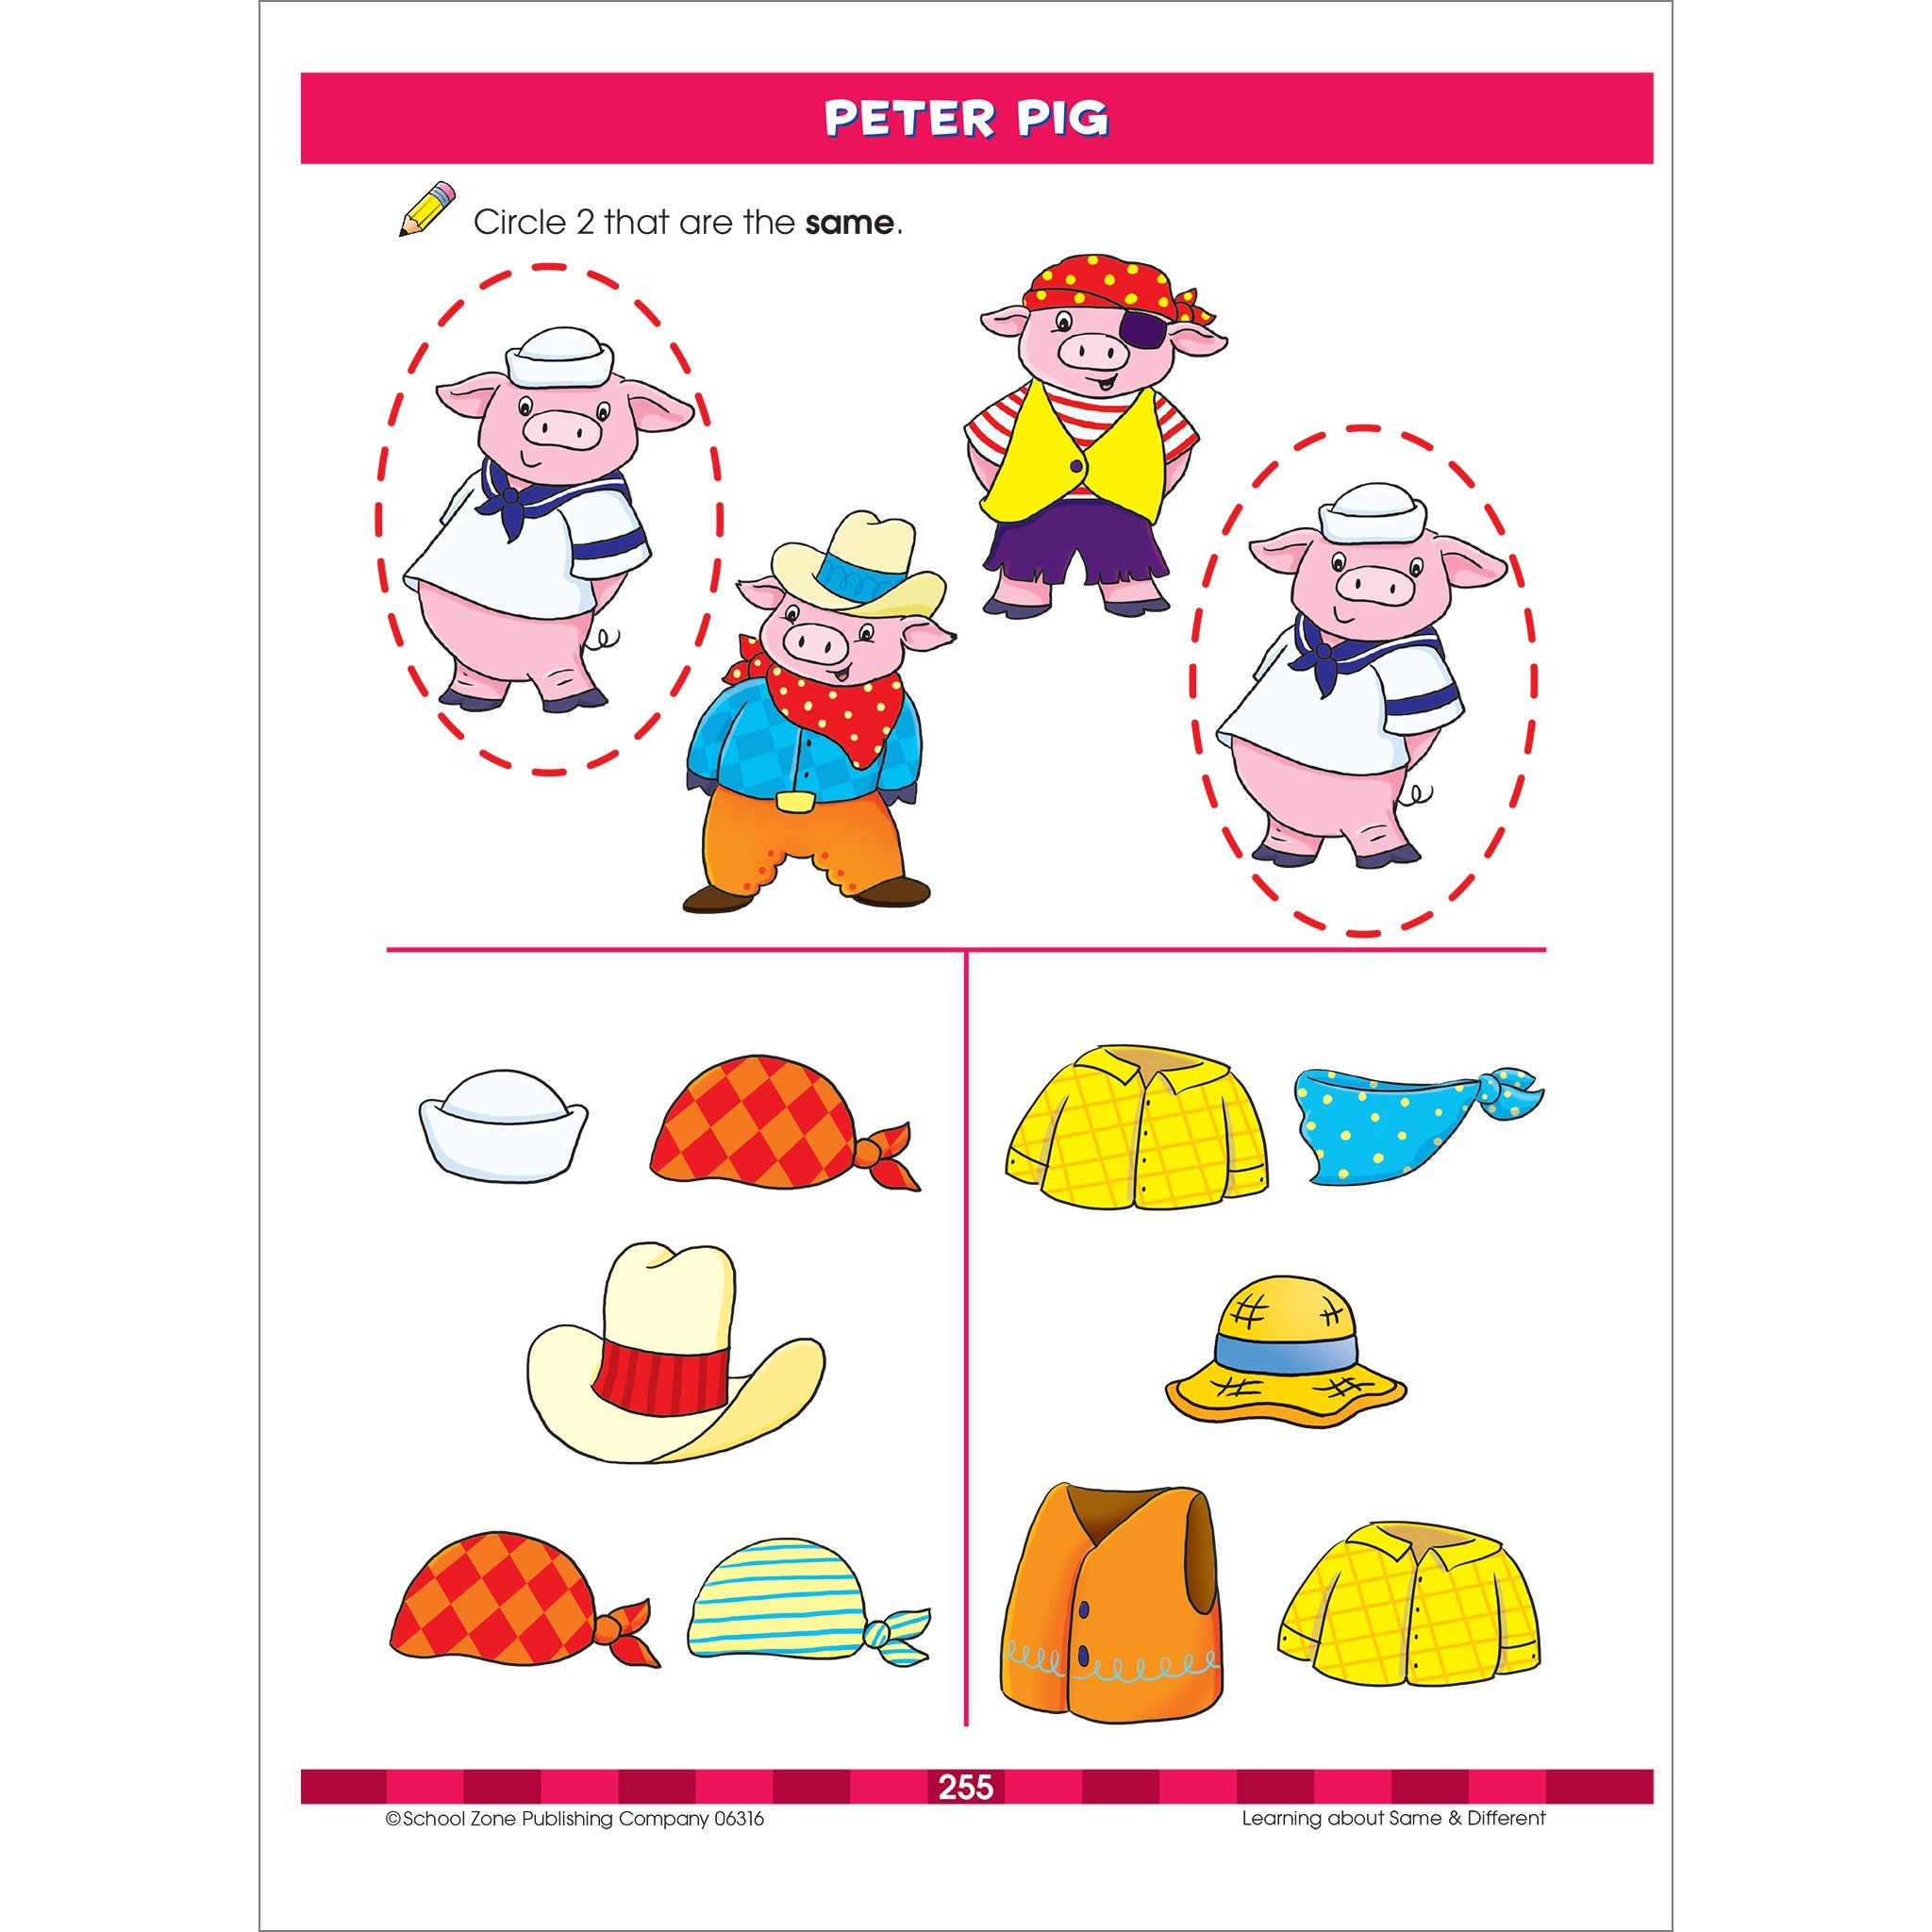 Worksheets School Zone Publishing Worksheets school zone publishing worksheets free library big preschool workbook staff multiple illustrators